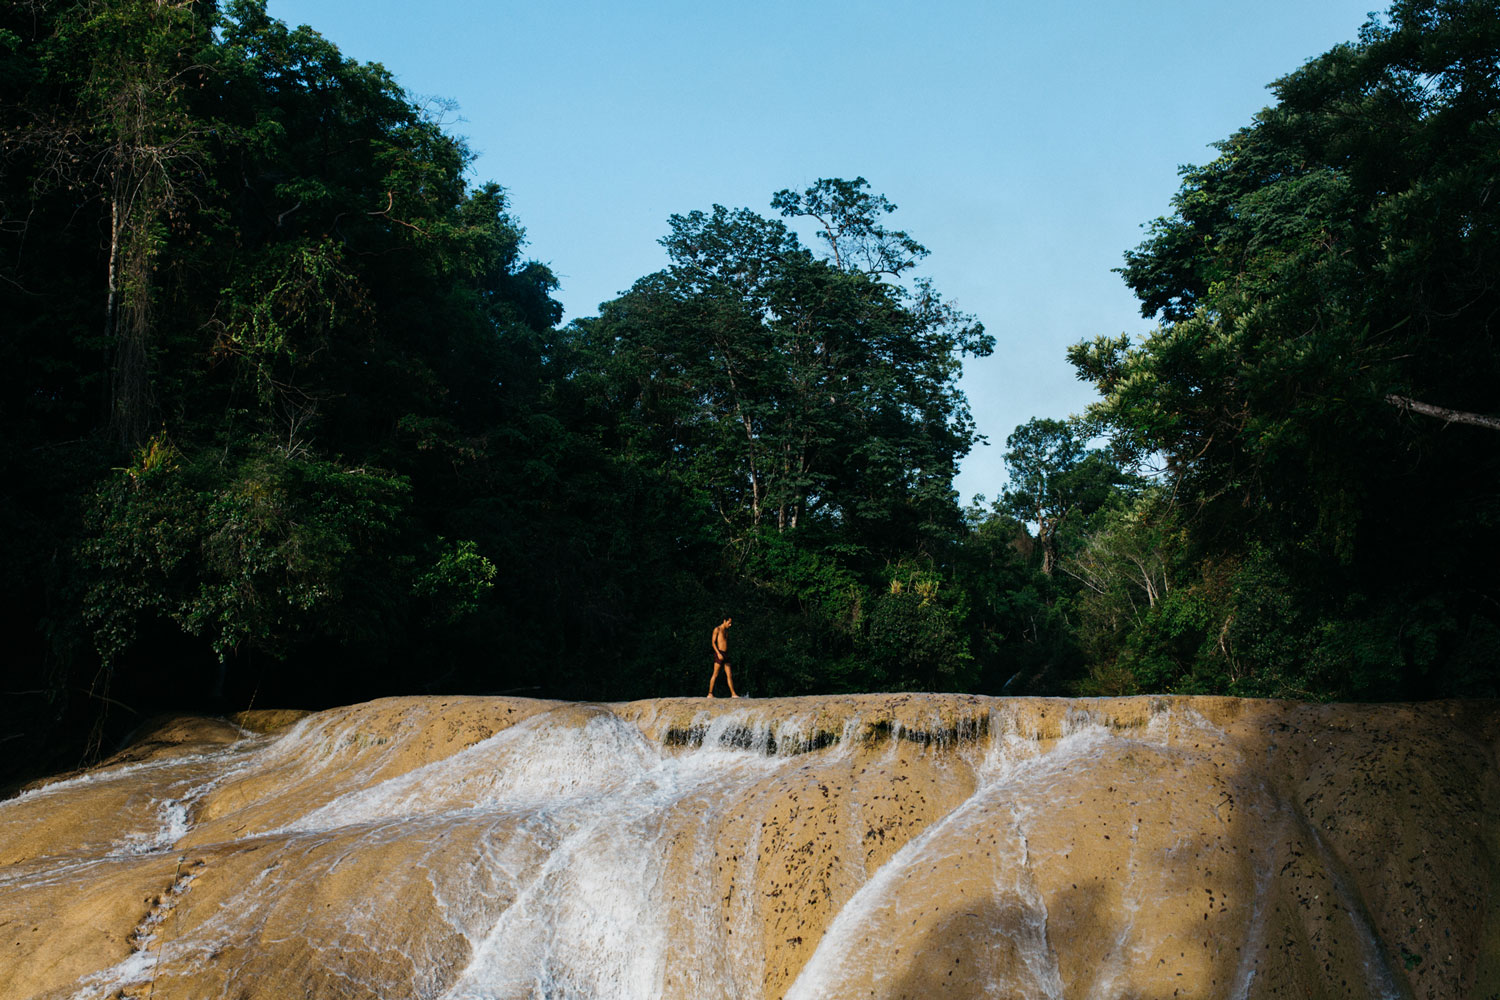 Hammocks_and_Ruins_Town_Villages_Chiapas_Lakes_Rivers_Jungles_Highlands_Agua_Azul_Waterfalls19 (long).jpg